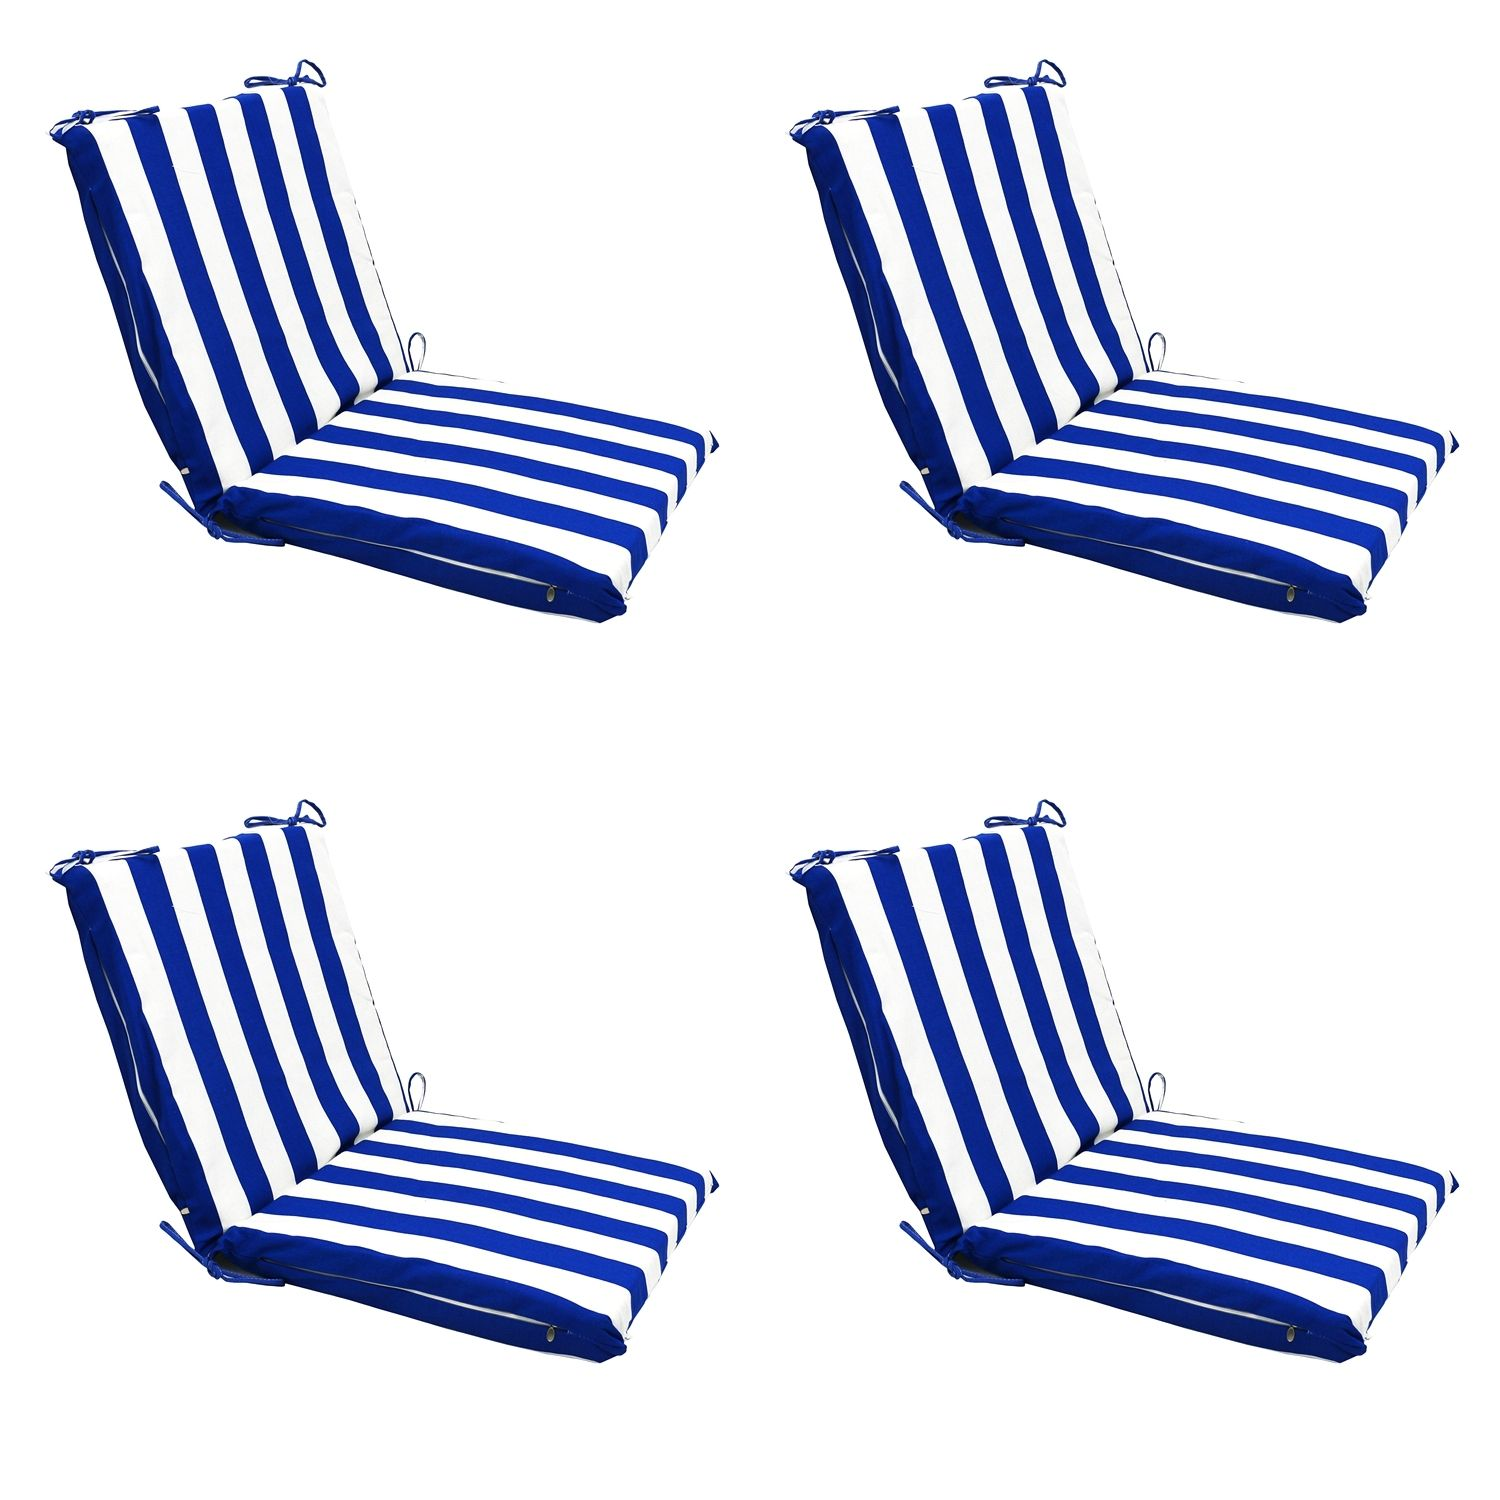 Lounge clipart cushion Cushion Foam Chair Stripes Blue